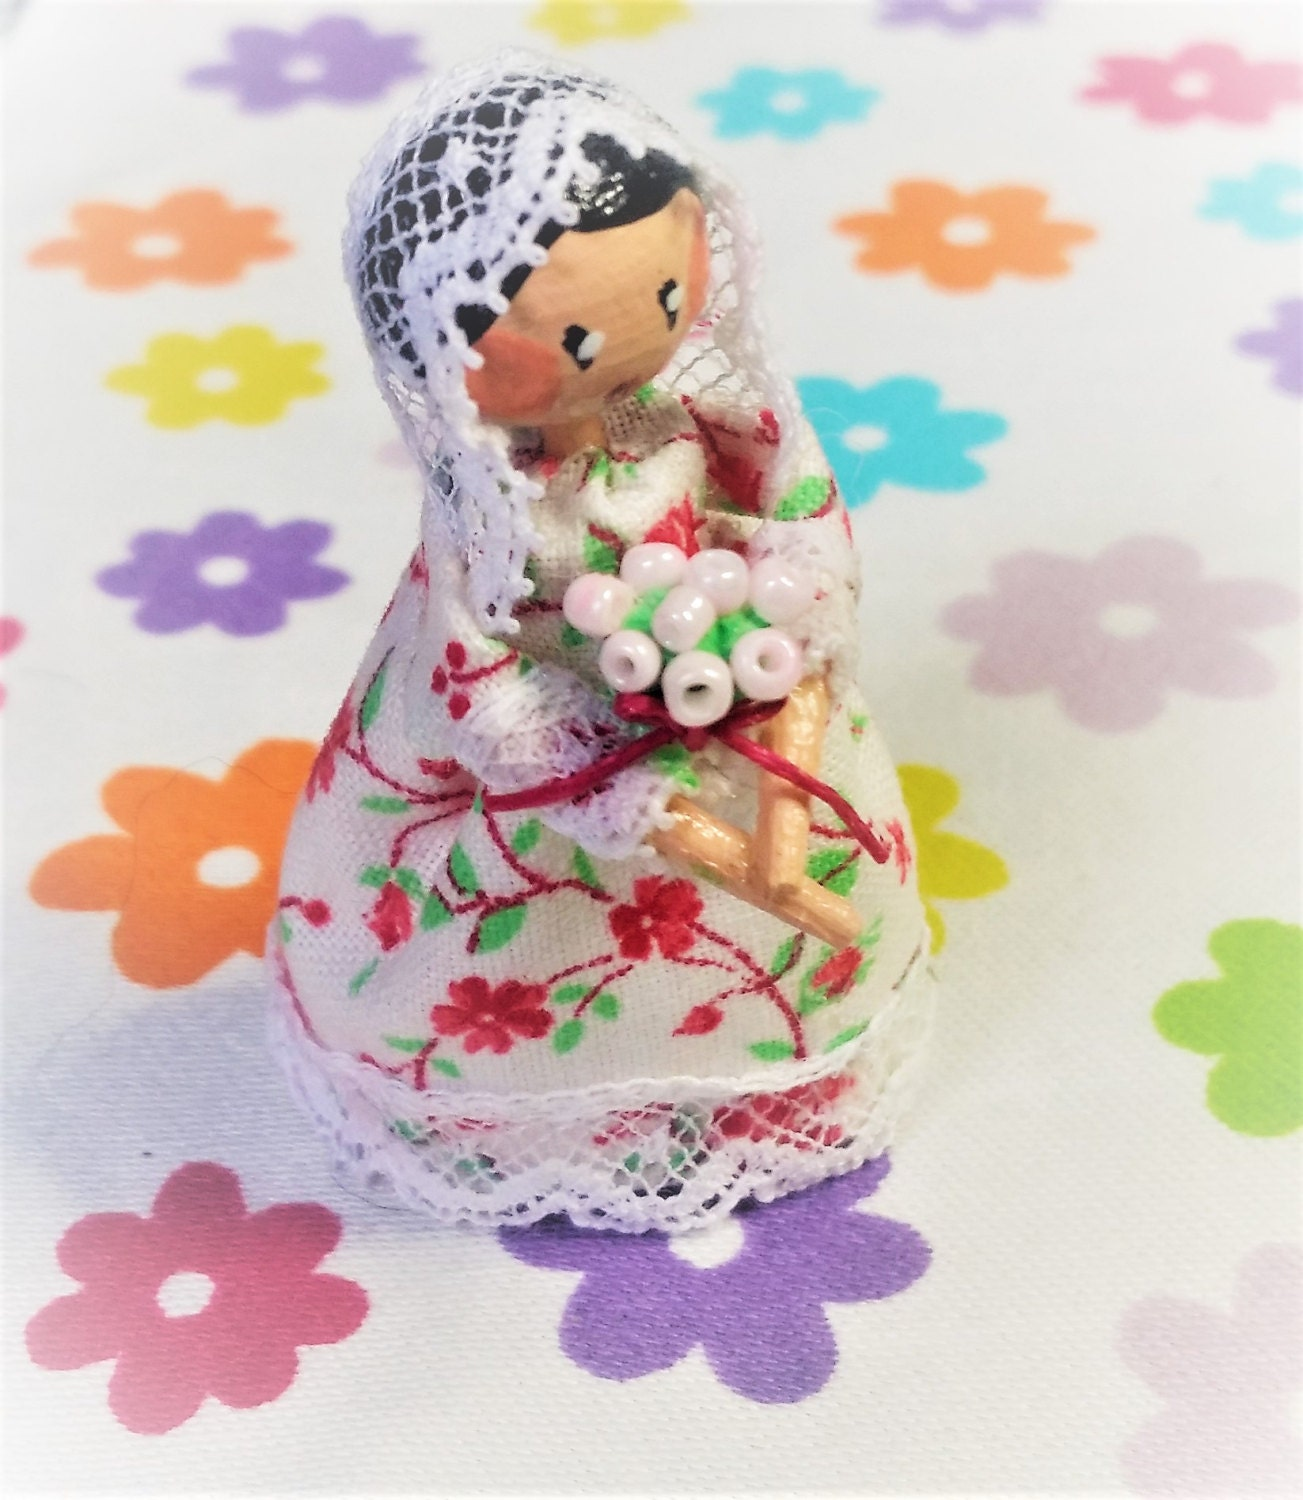 Handcrafted OOAK wooden Dillydolly  Amelia Haversham  collectable dolly or dolls house toy